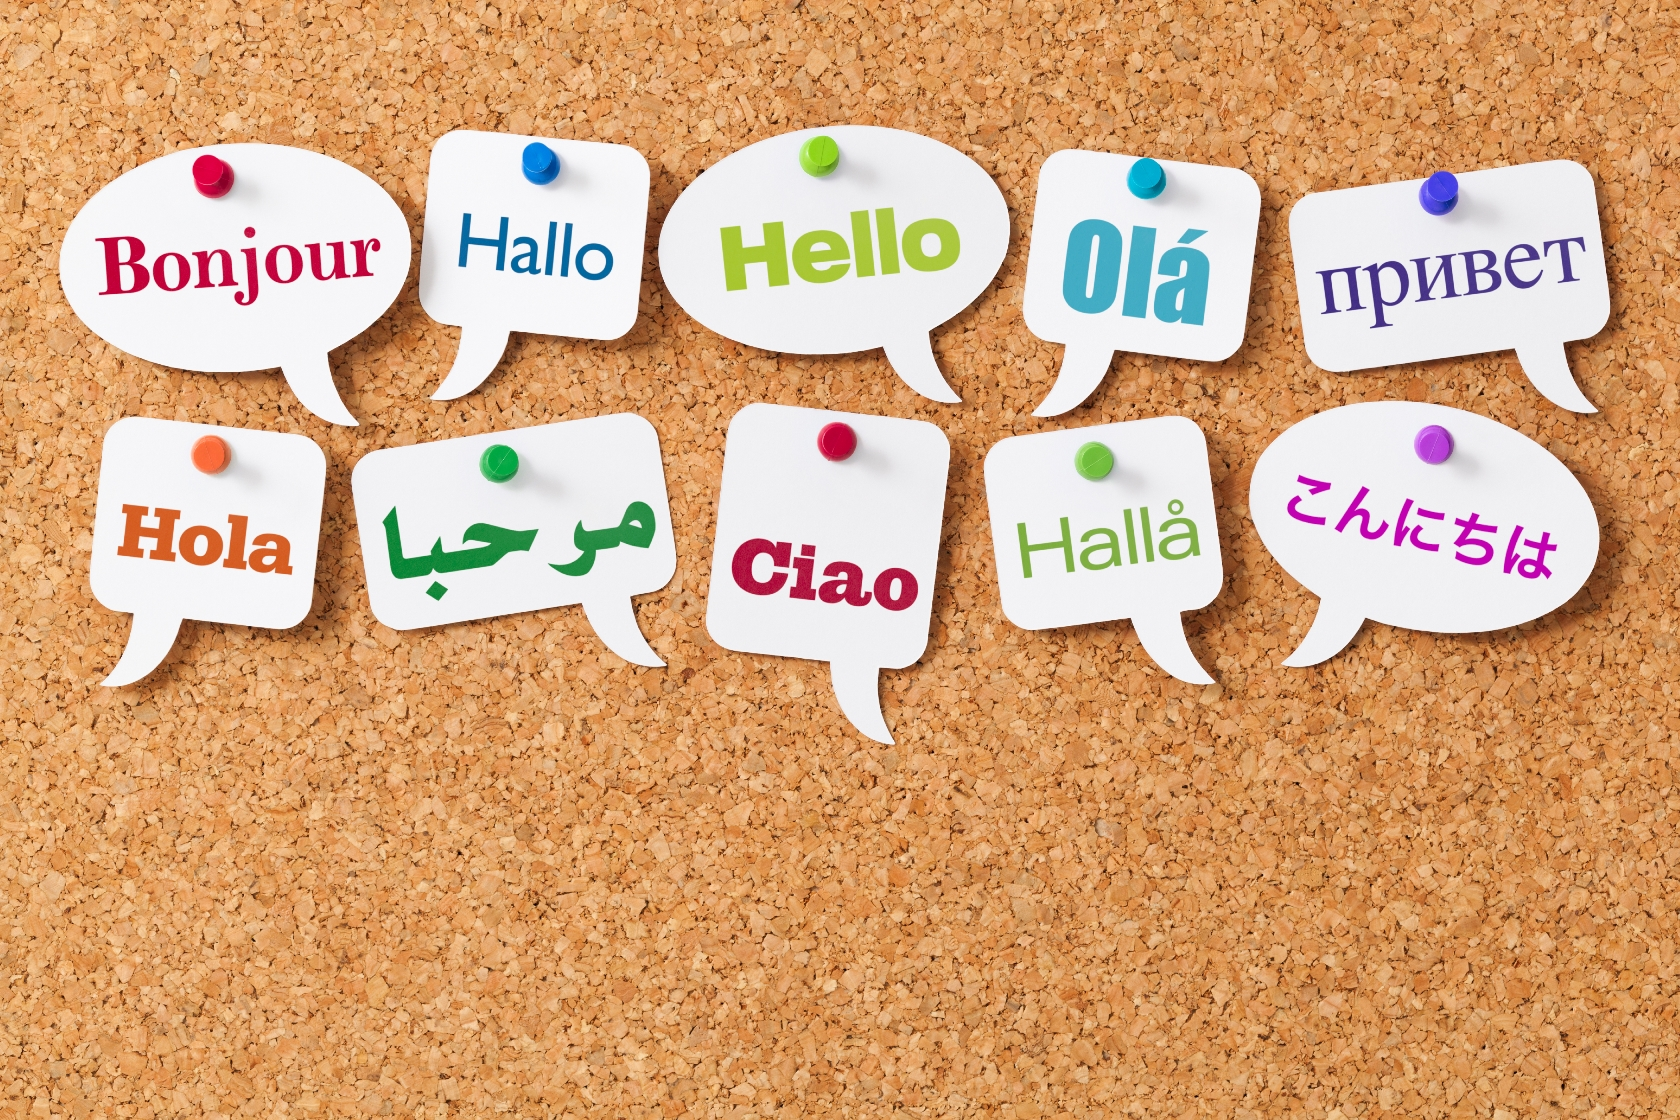 How learning a language can boost your career prospects